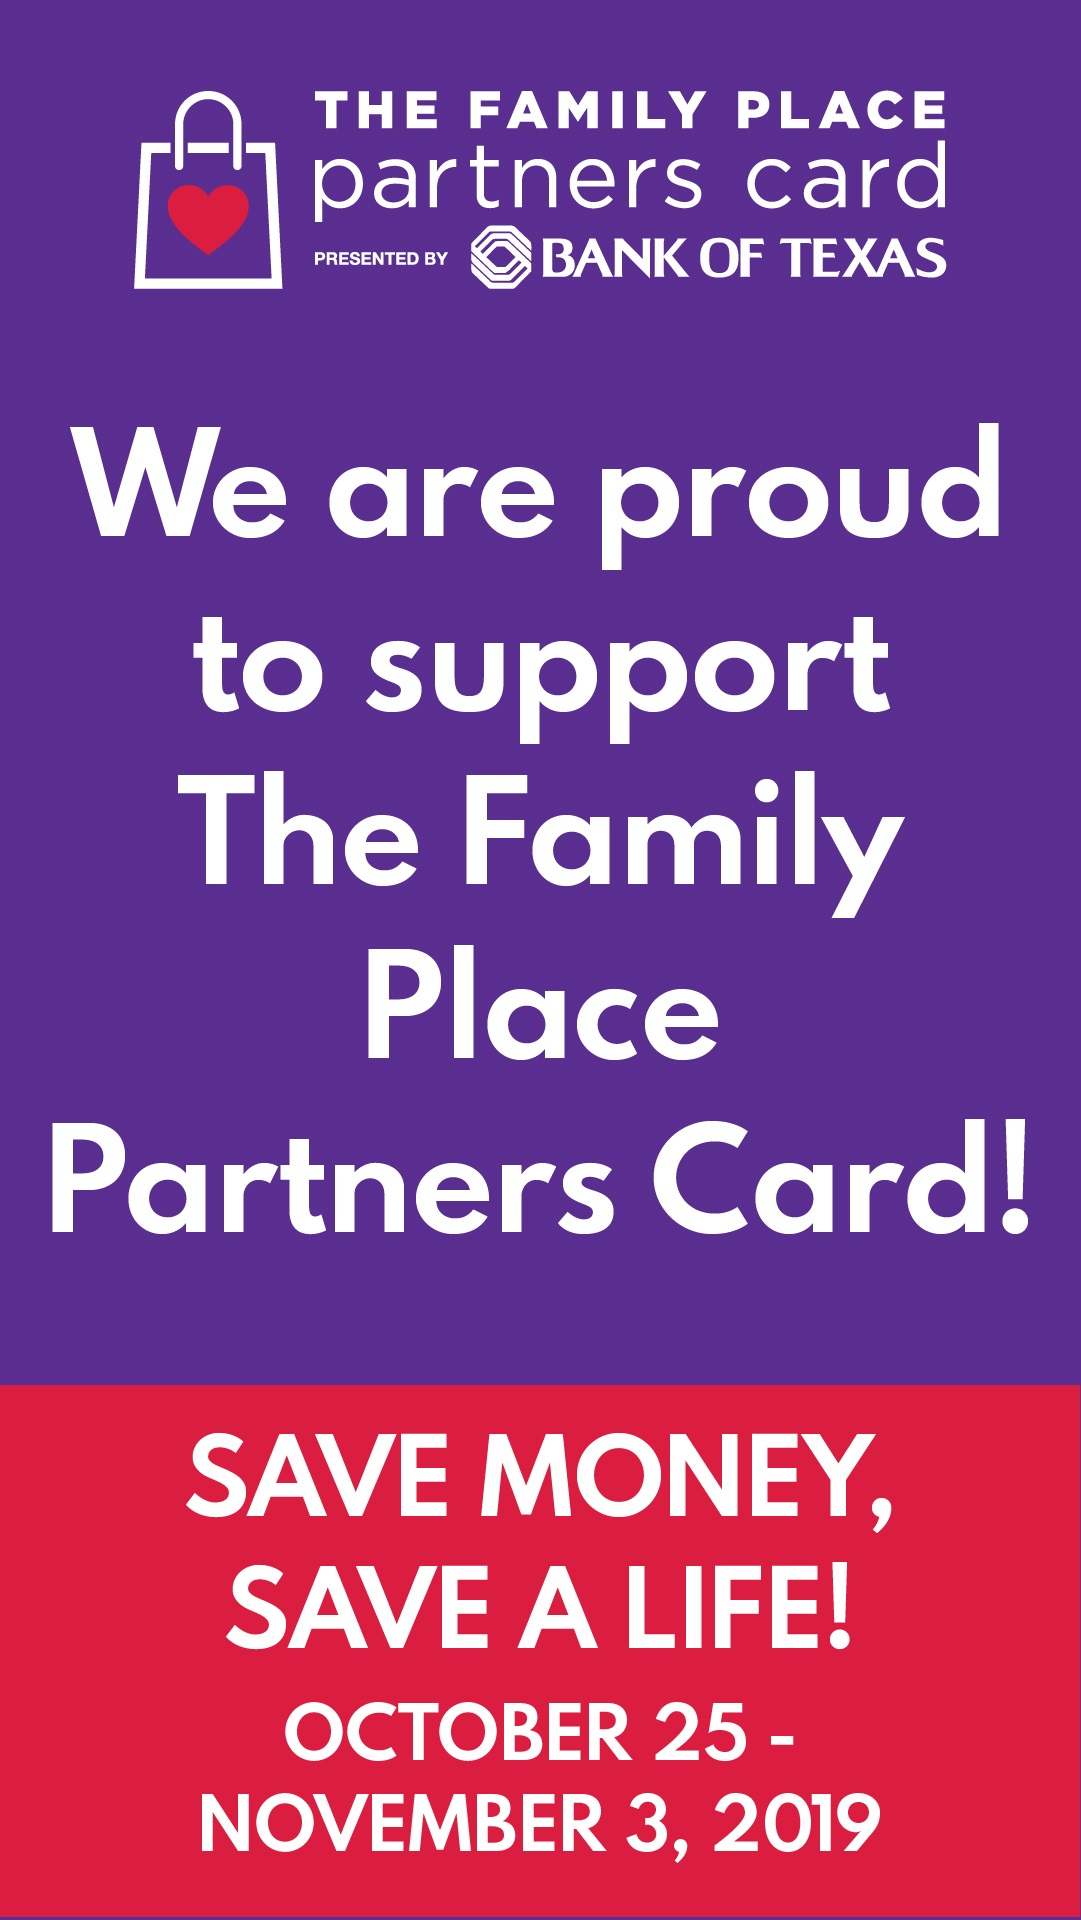 partners-card-2019-proud-to-support-pc.jpg